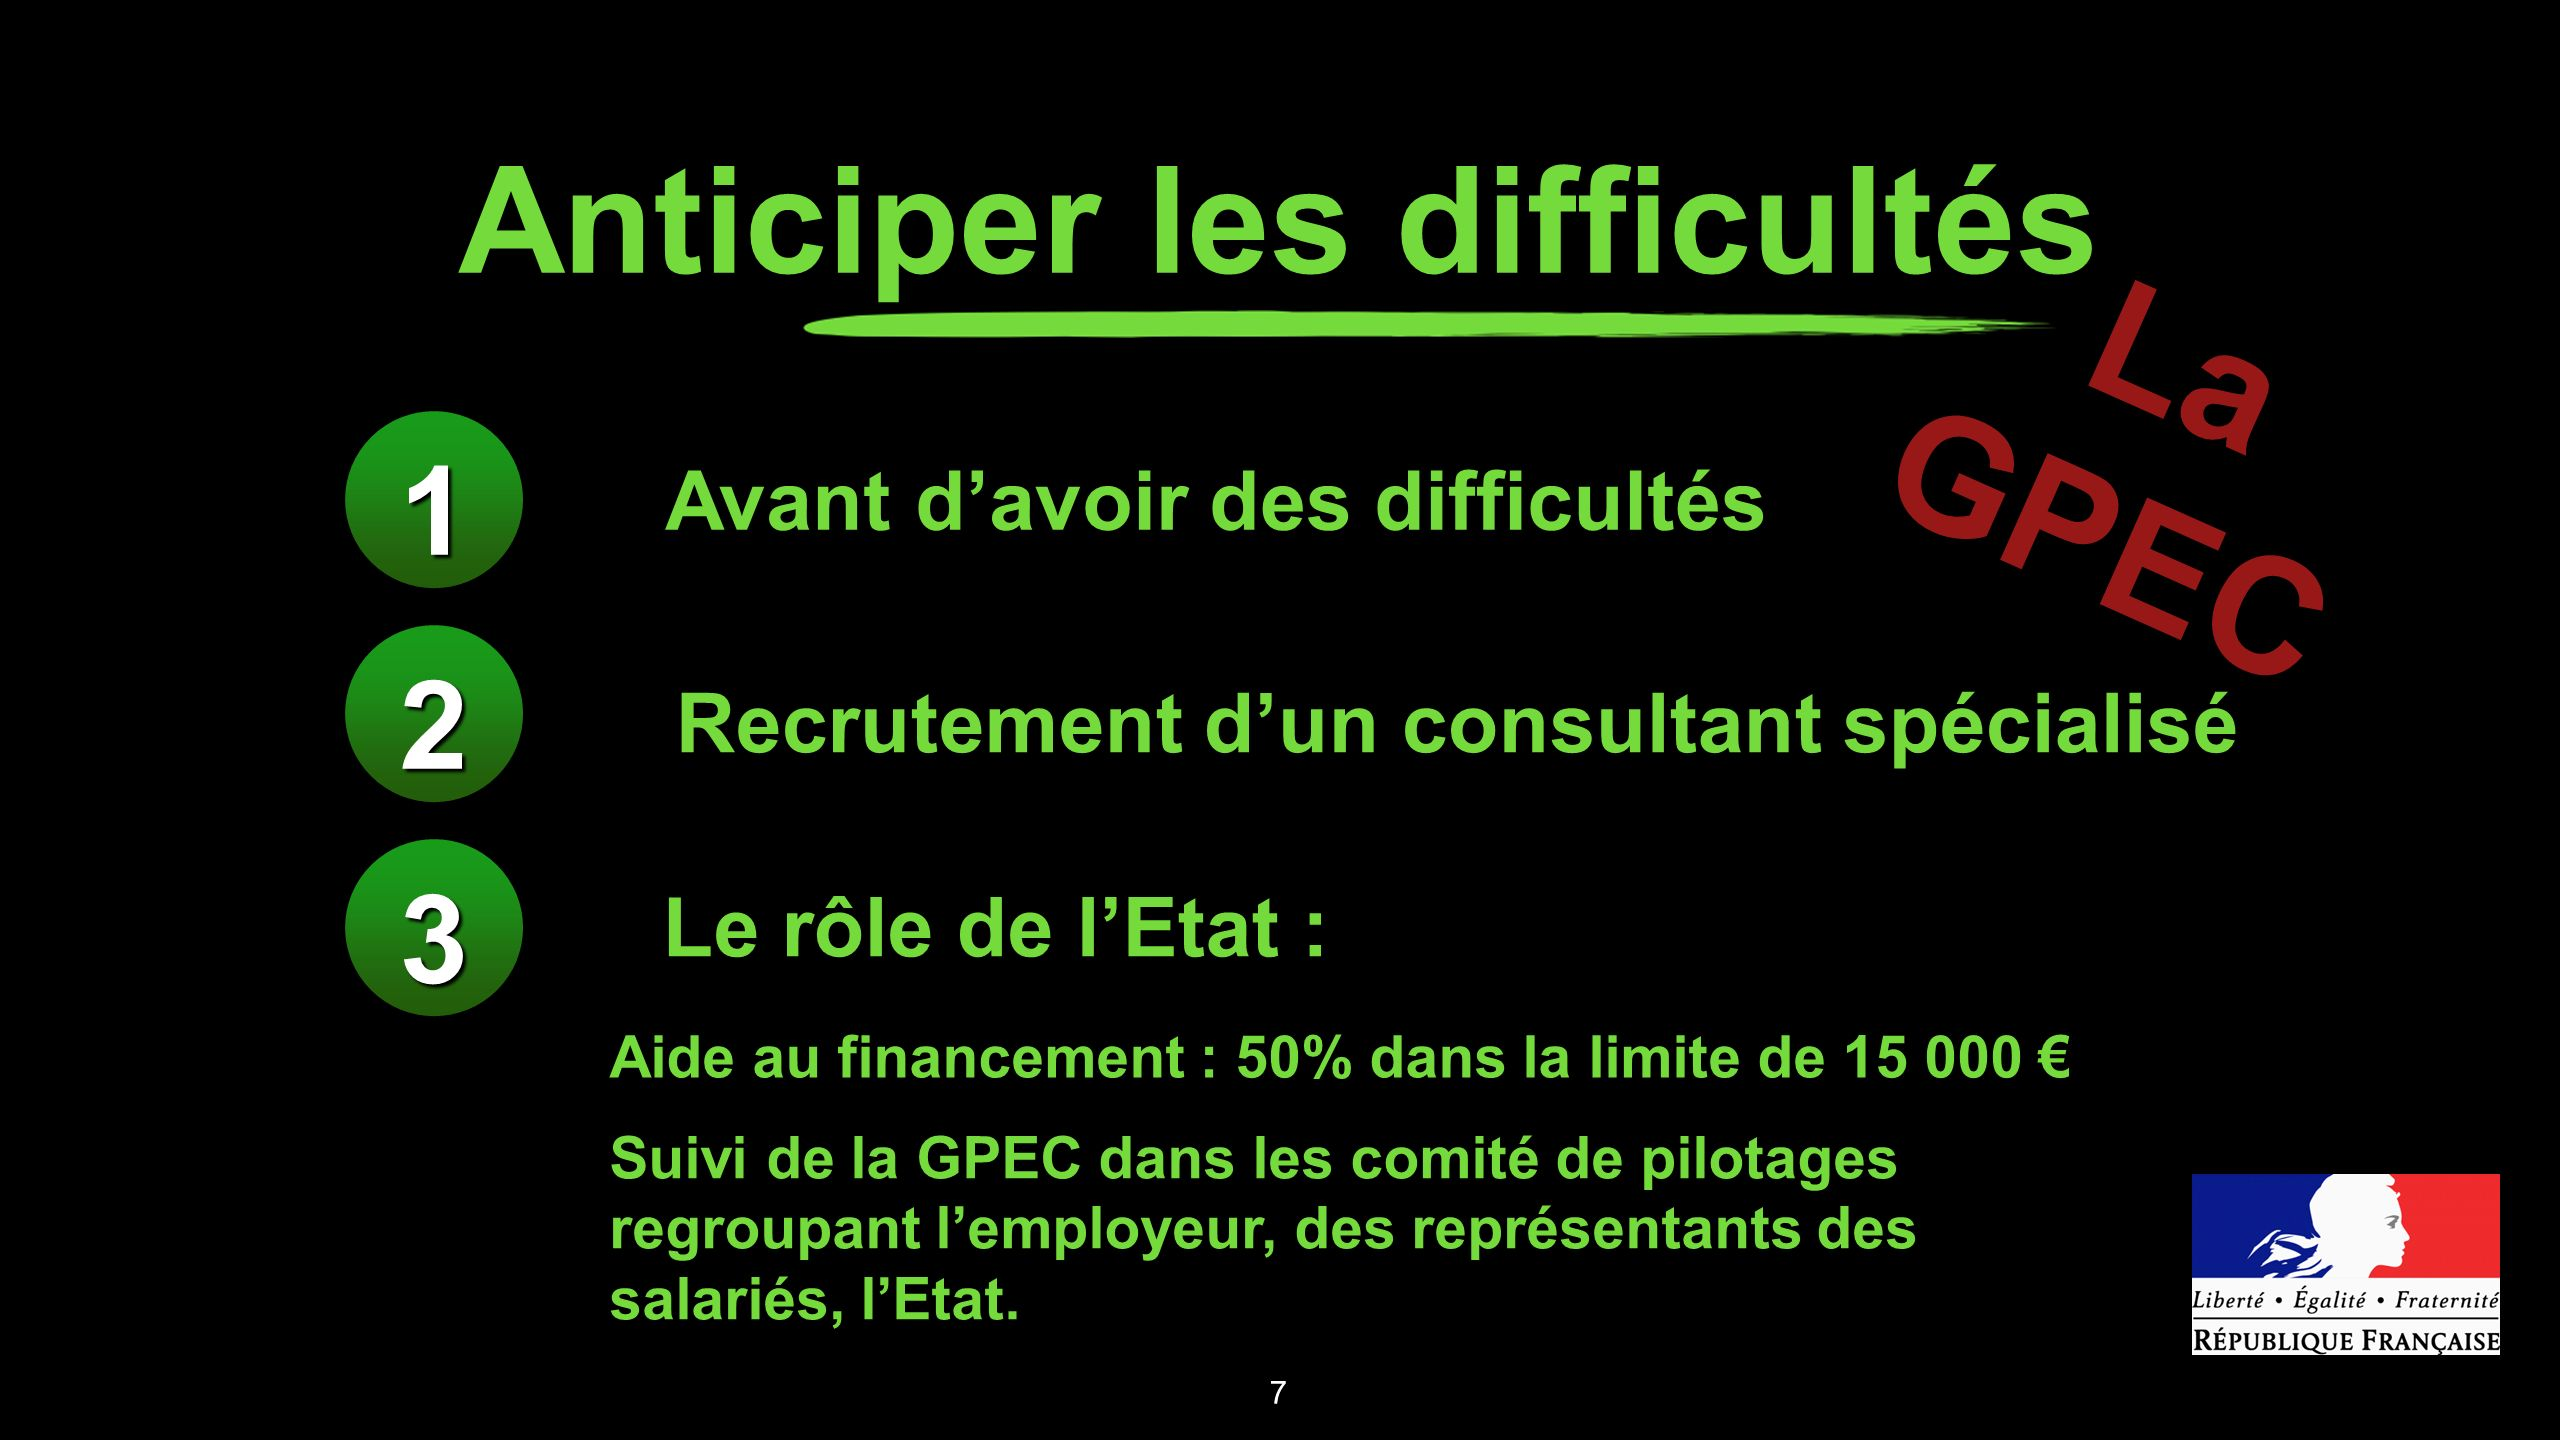 Anticiper les difficultés